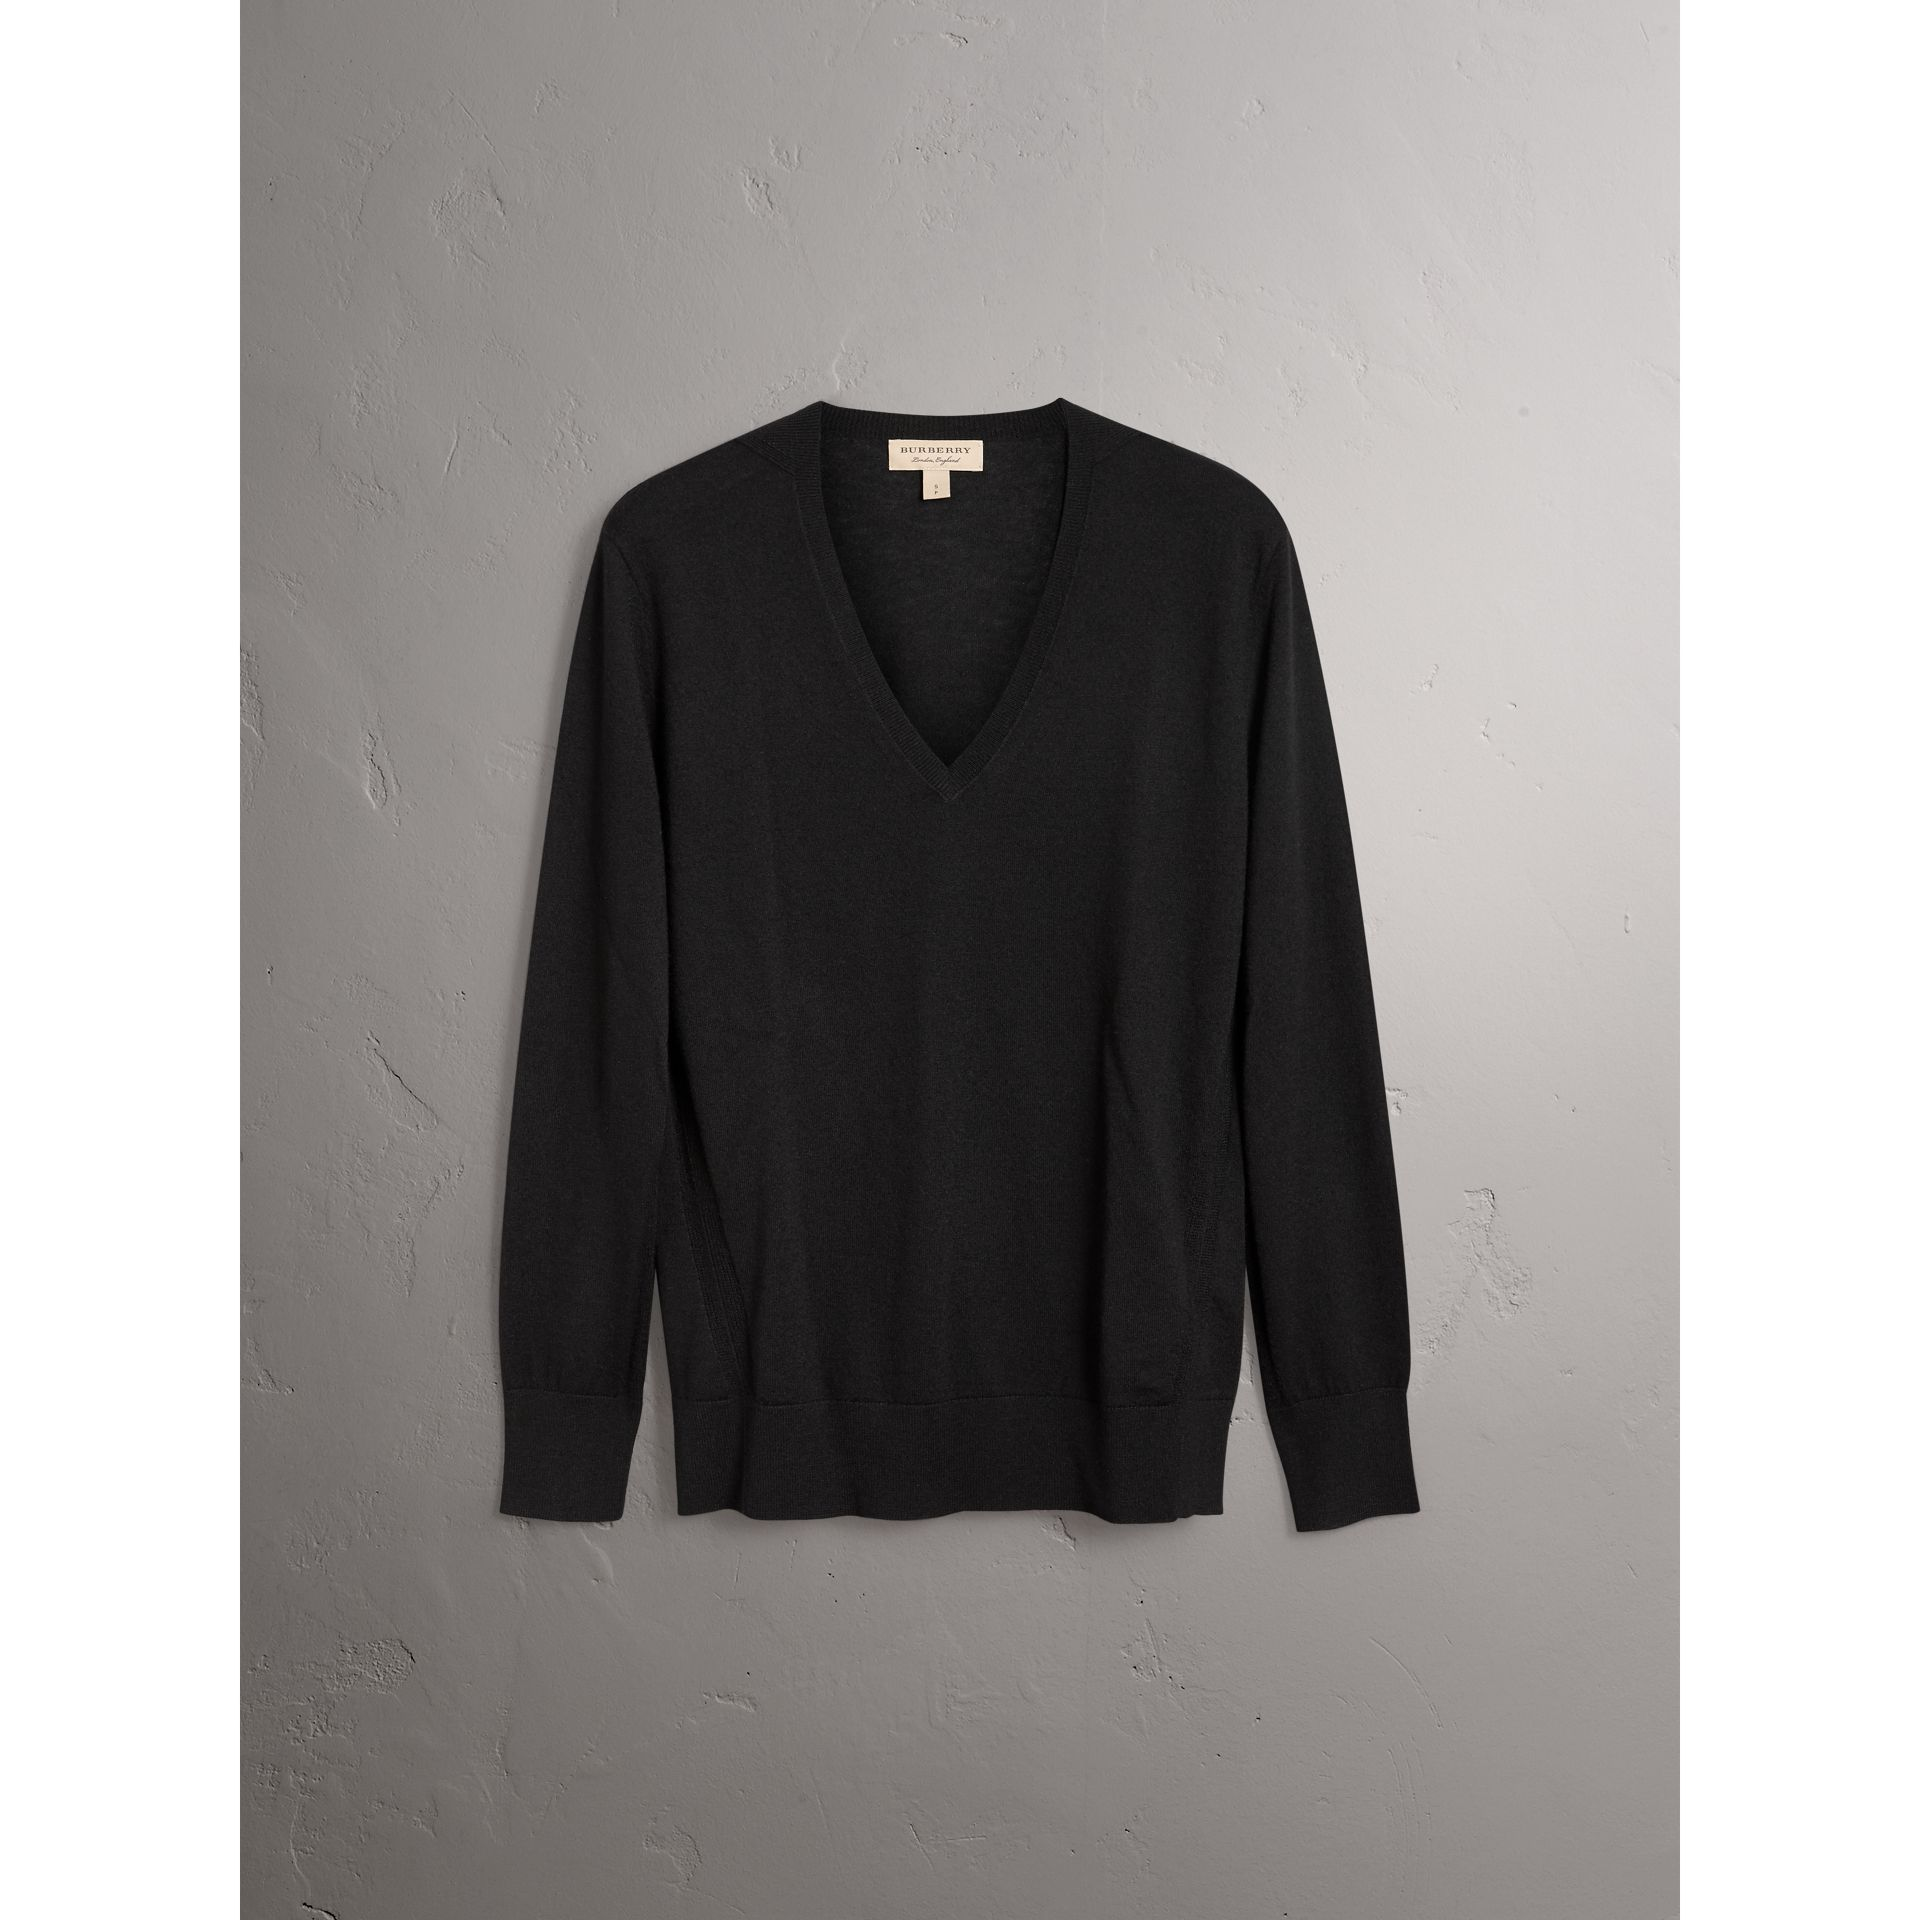 Check Detail Cashmere V-neck Sweater in Black - Women | Burberry Canada - gallery image 3